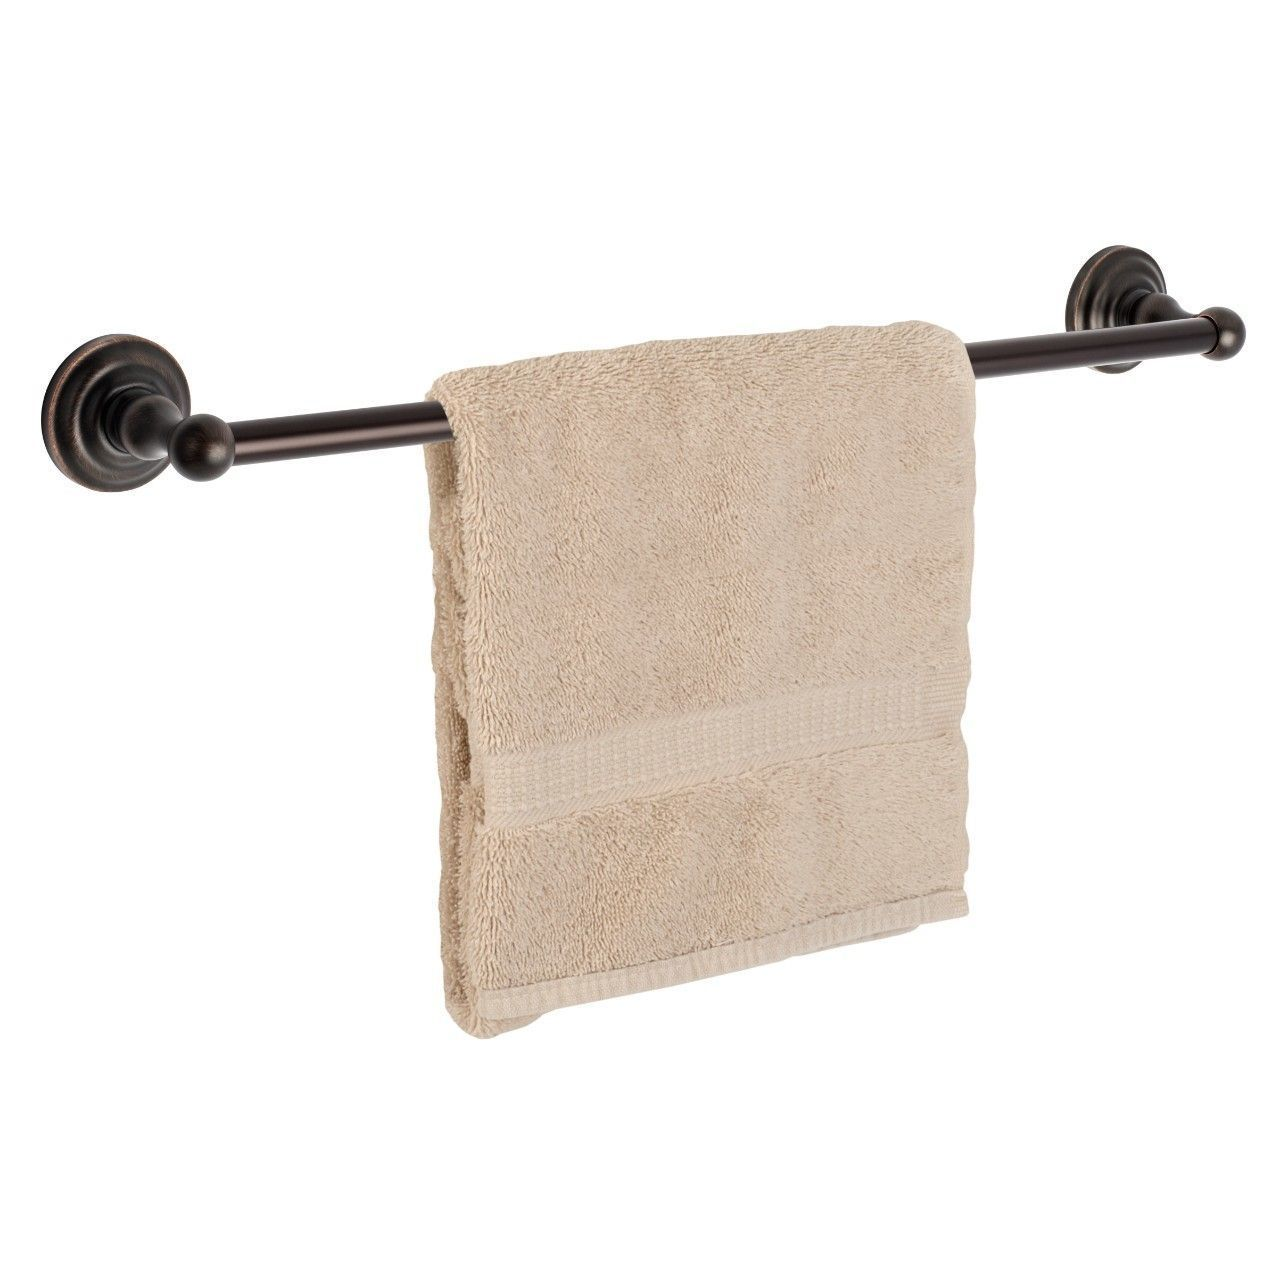 "Dynasty Hardware Palisades 3824-ORB Oil Rubbed Bronze 24"" Single Towel Bar"